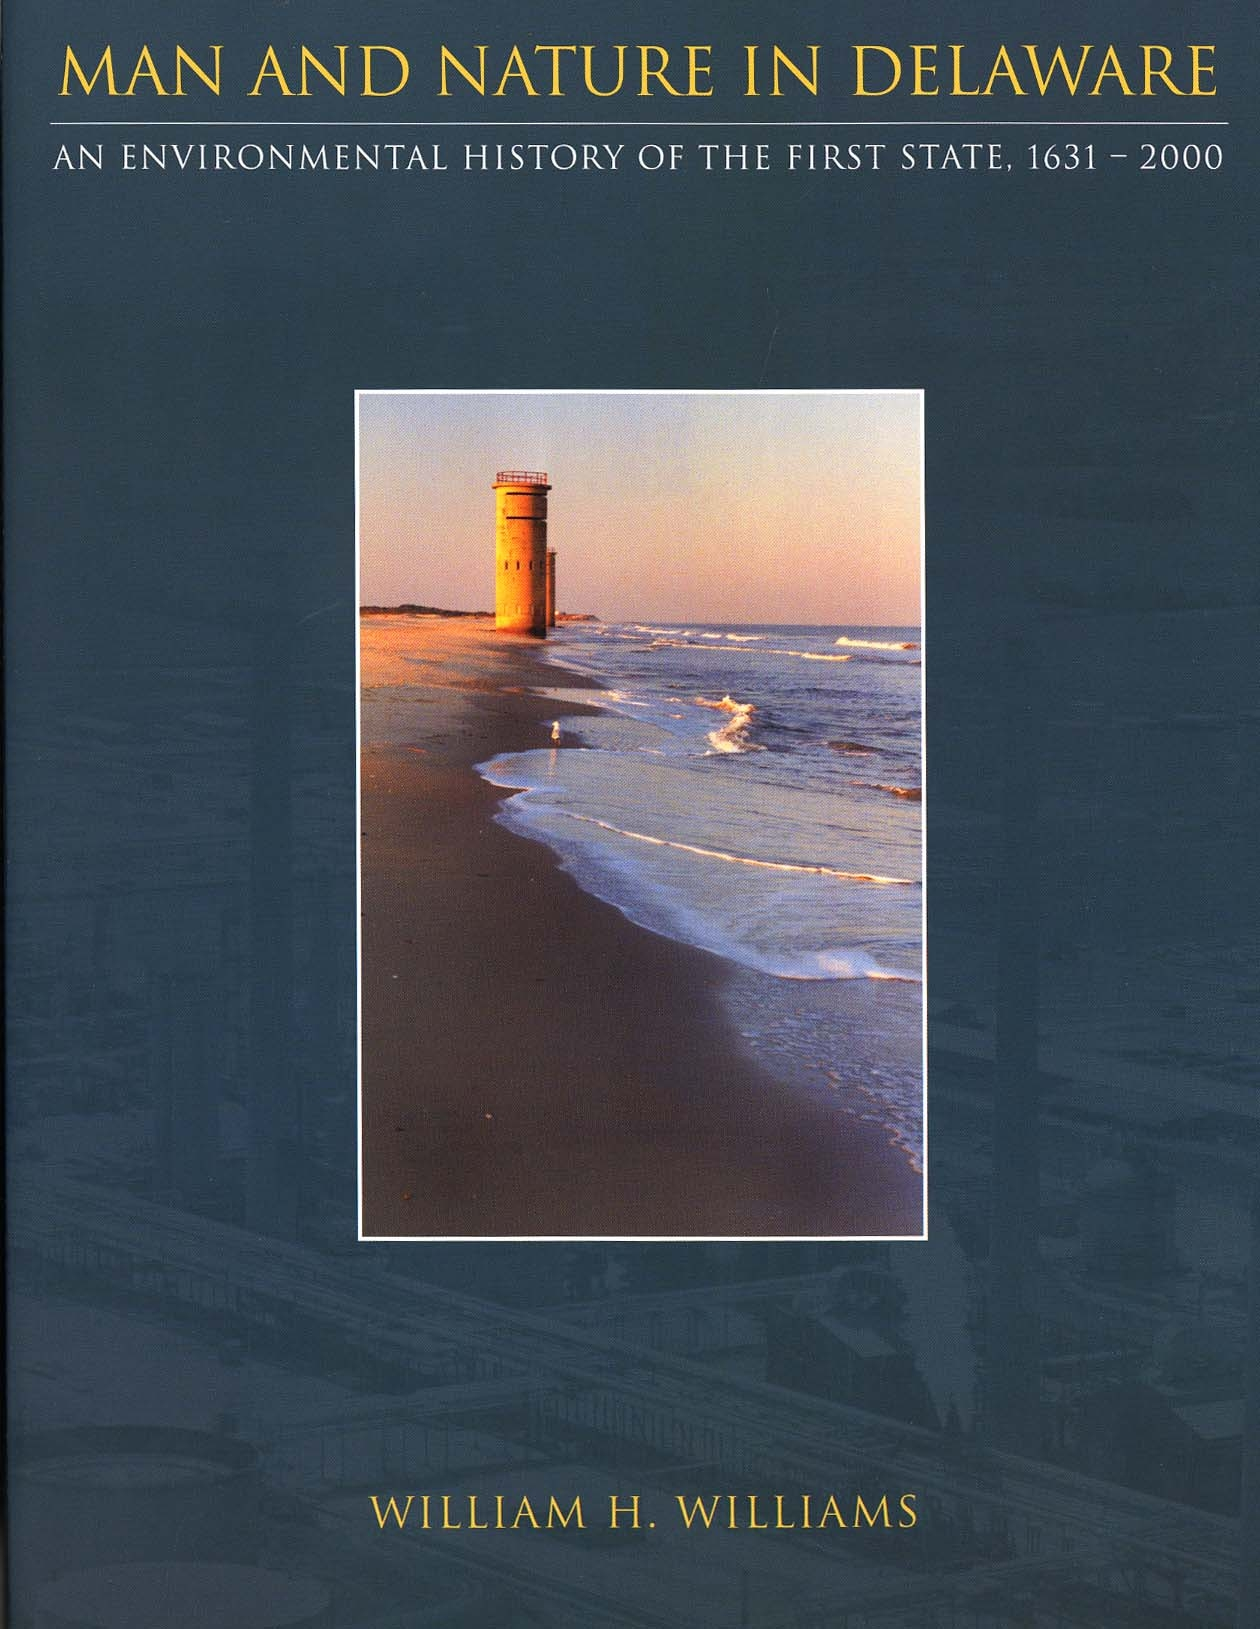 Man and Nature in Delaware: An Environmental History of Delaware, by William H. Williams, 2008, 301 pp., HARDCOVER. Prices reflect the cost of the book PLUS S&H fee of $5.00.